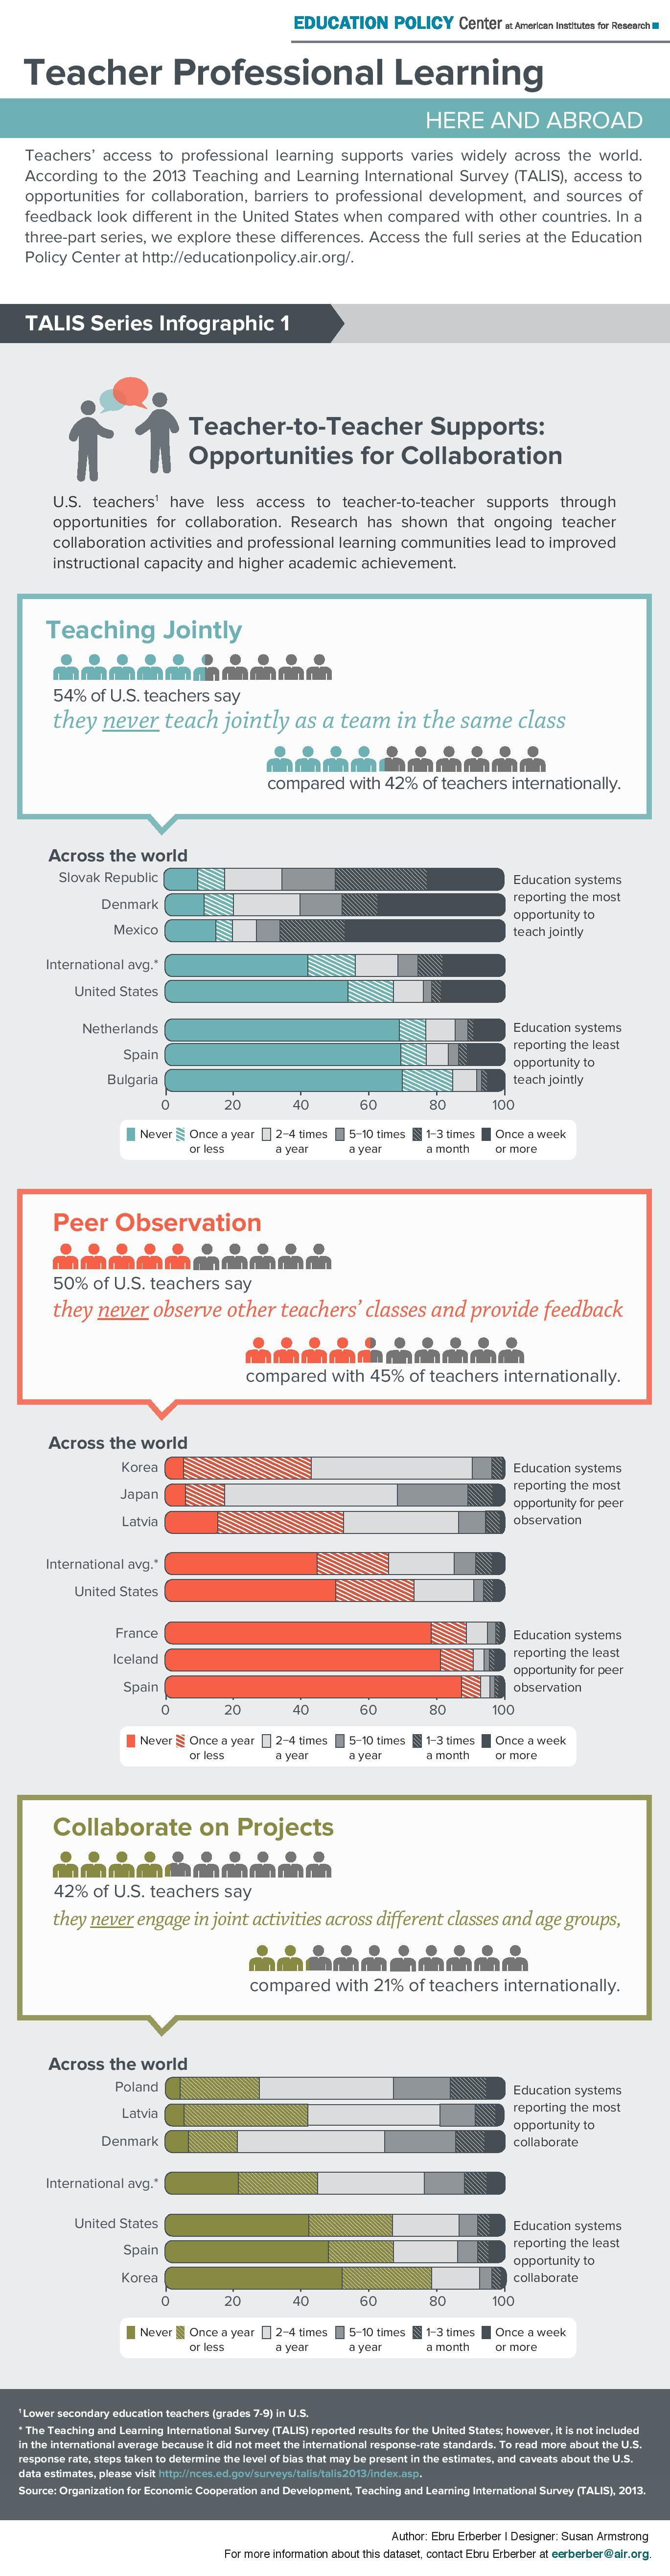 Do U.S. Teachers Learn from One Another? Infographic